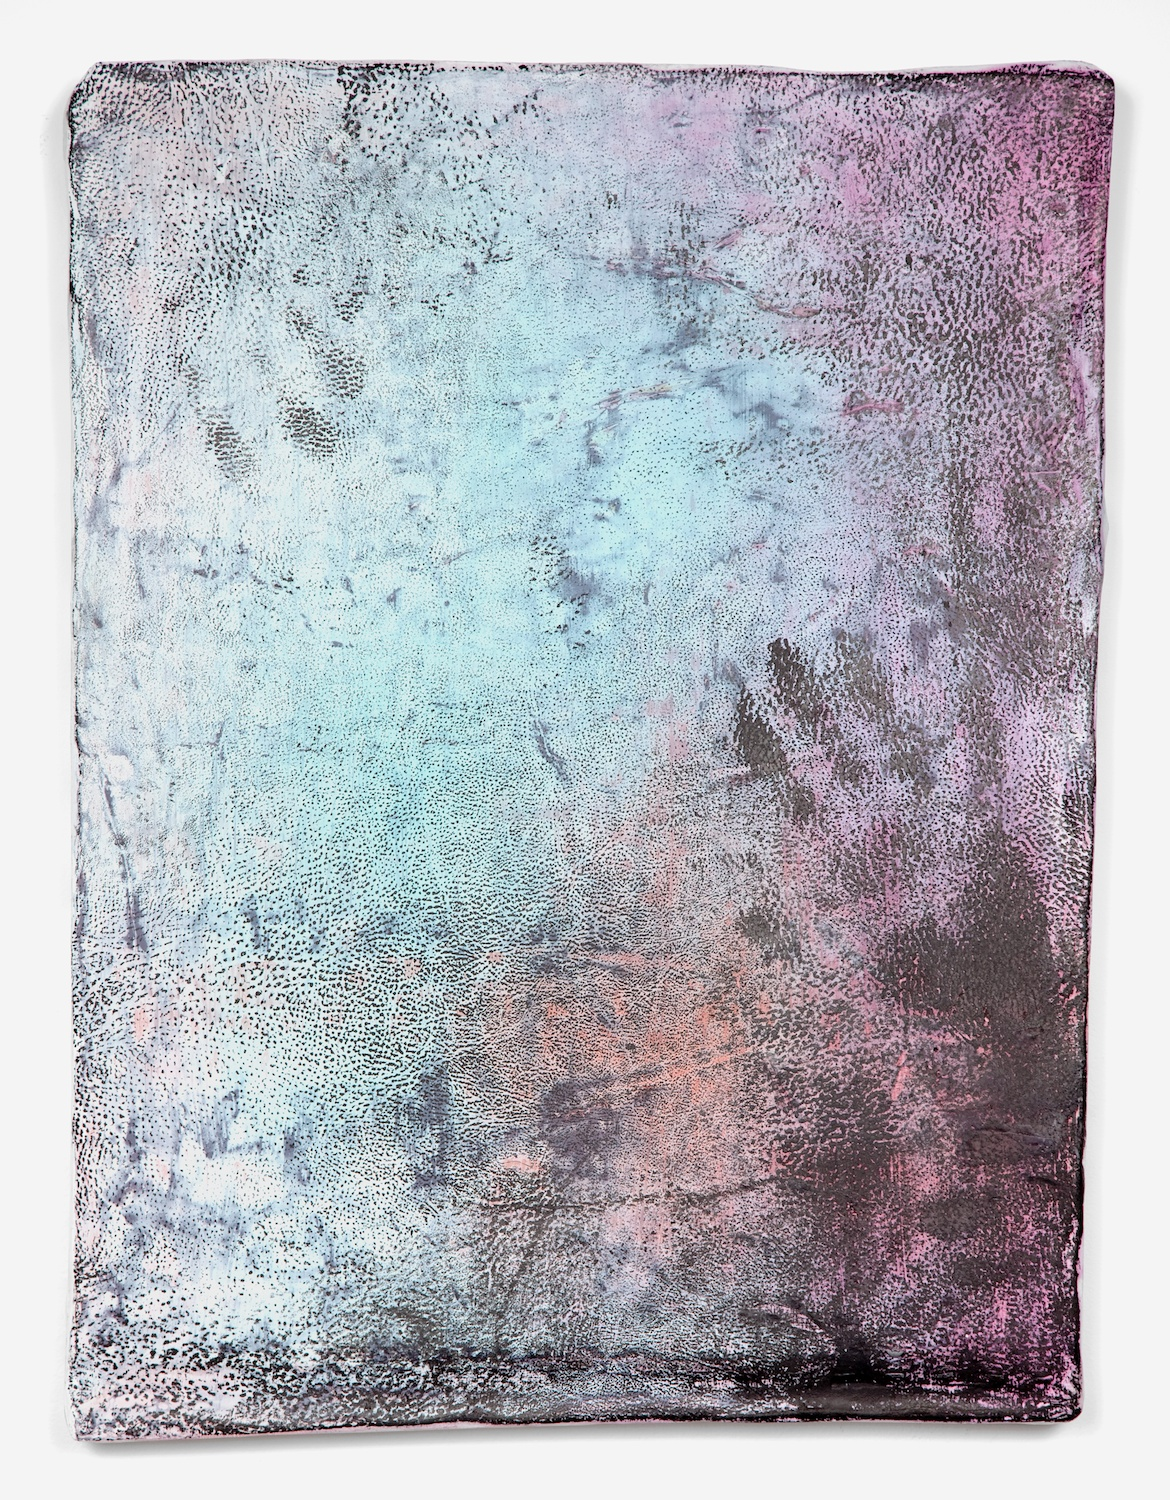 Jay Heikes  Purgatory's Chasm  2011 Paper, aluminum, dry pigment, ink, and wood 26h x 19 ½w in H028